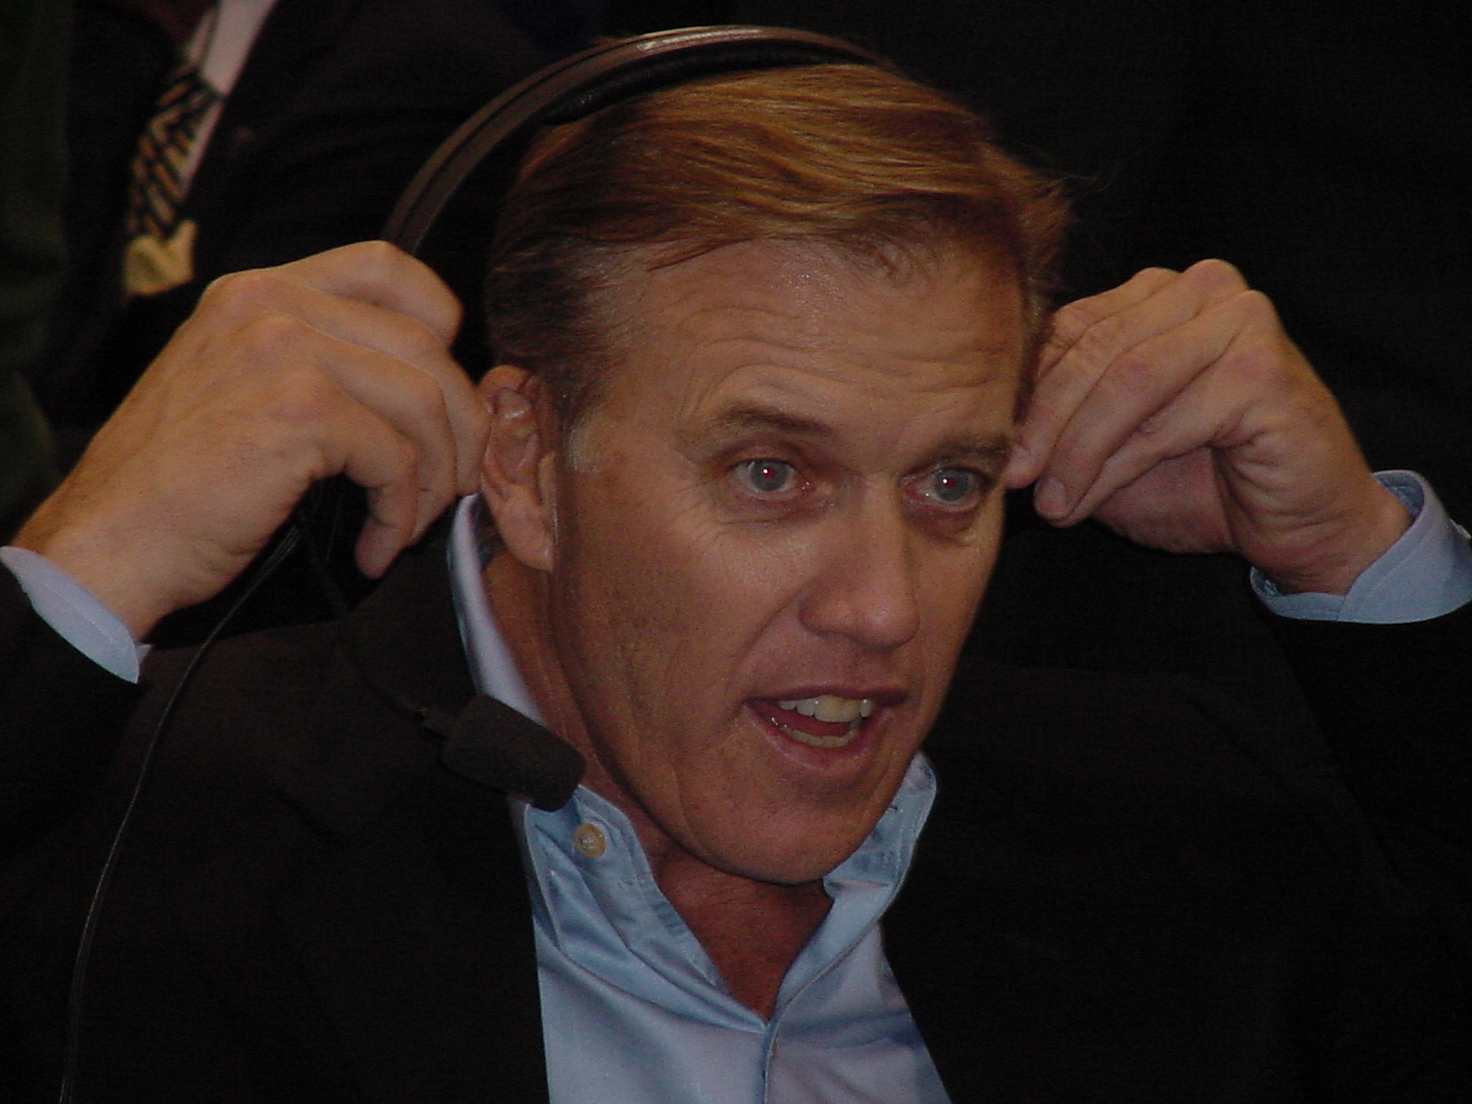 ... com : Photo Gallery :: Super Bowl 42 Pre-Game Events :: 89_John_Elway